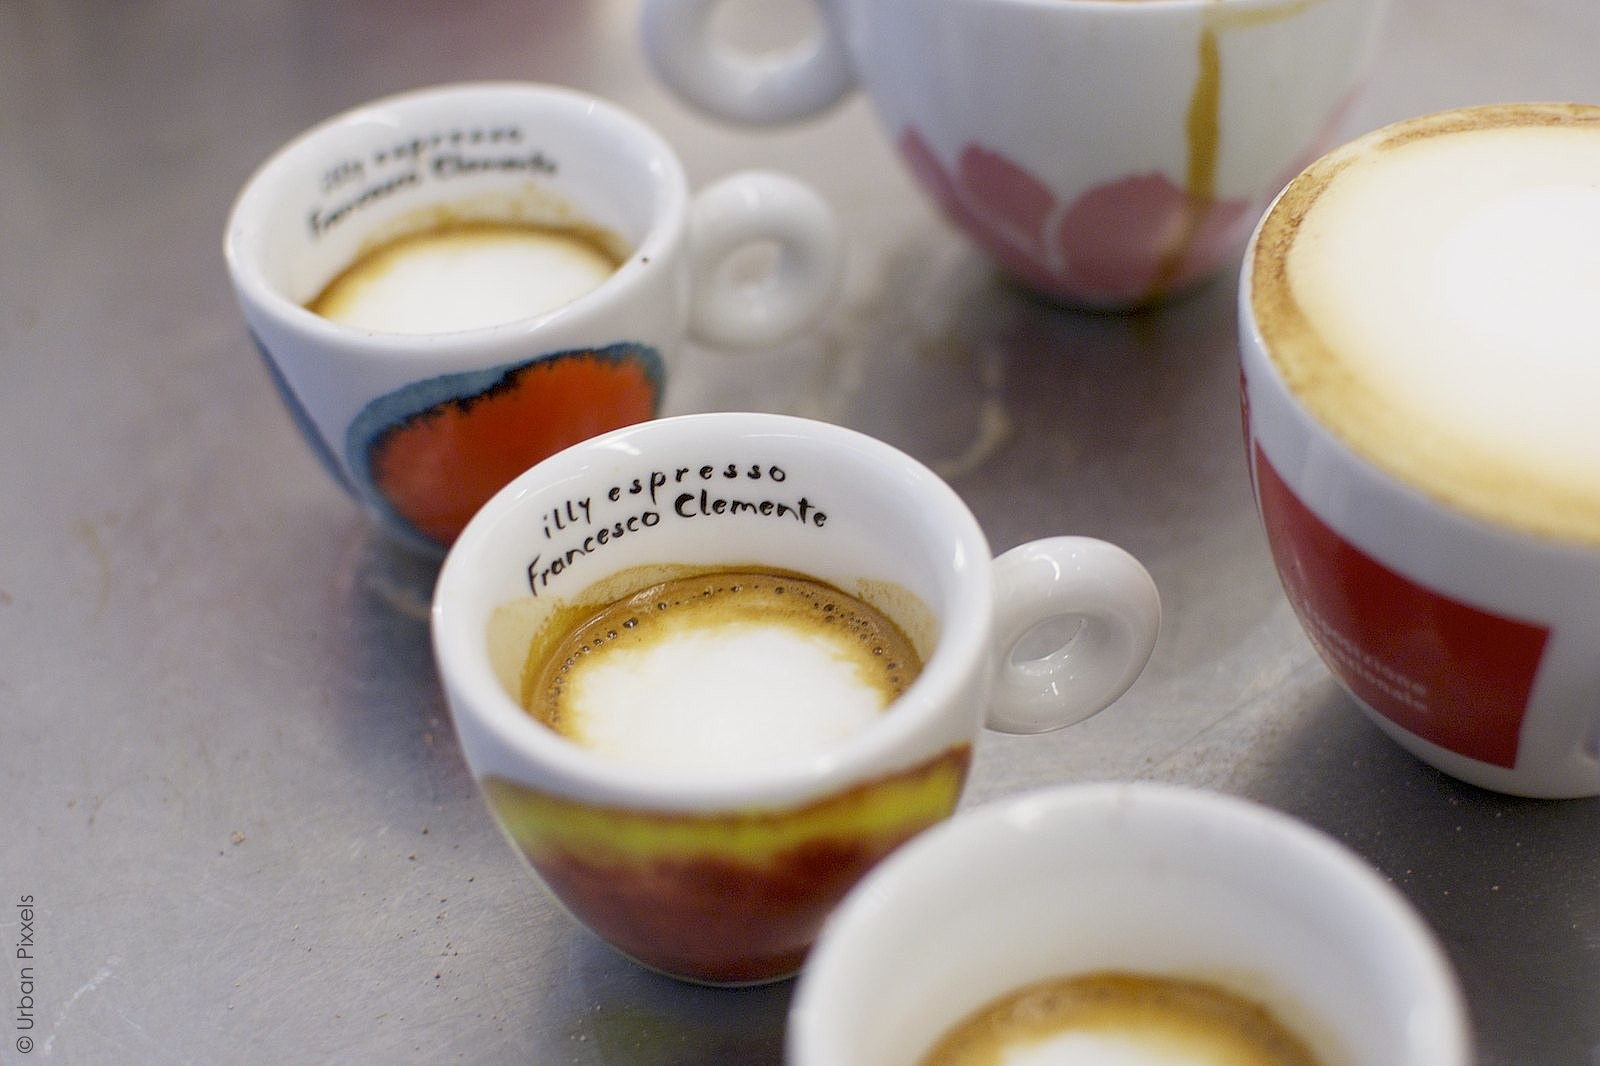 Mastering The Art Of The Perfect Coffee With Illy Urban Pixxels